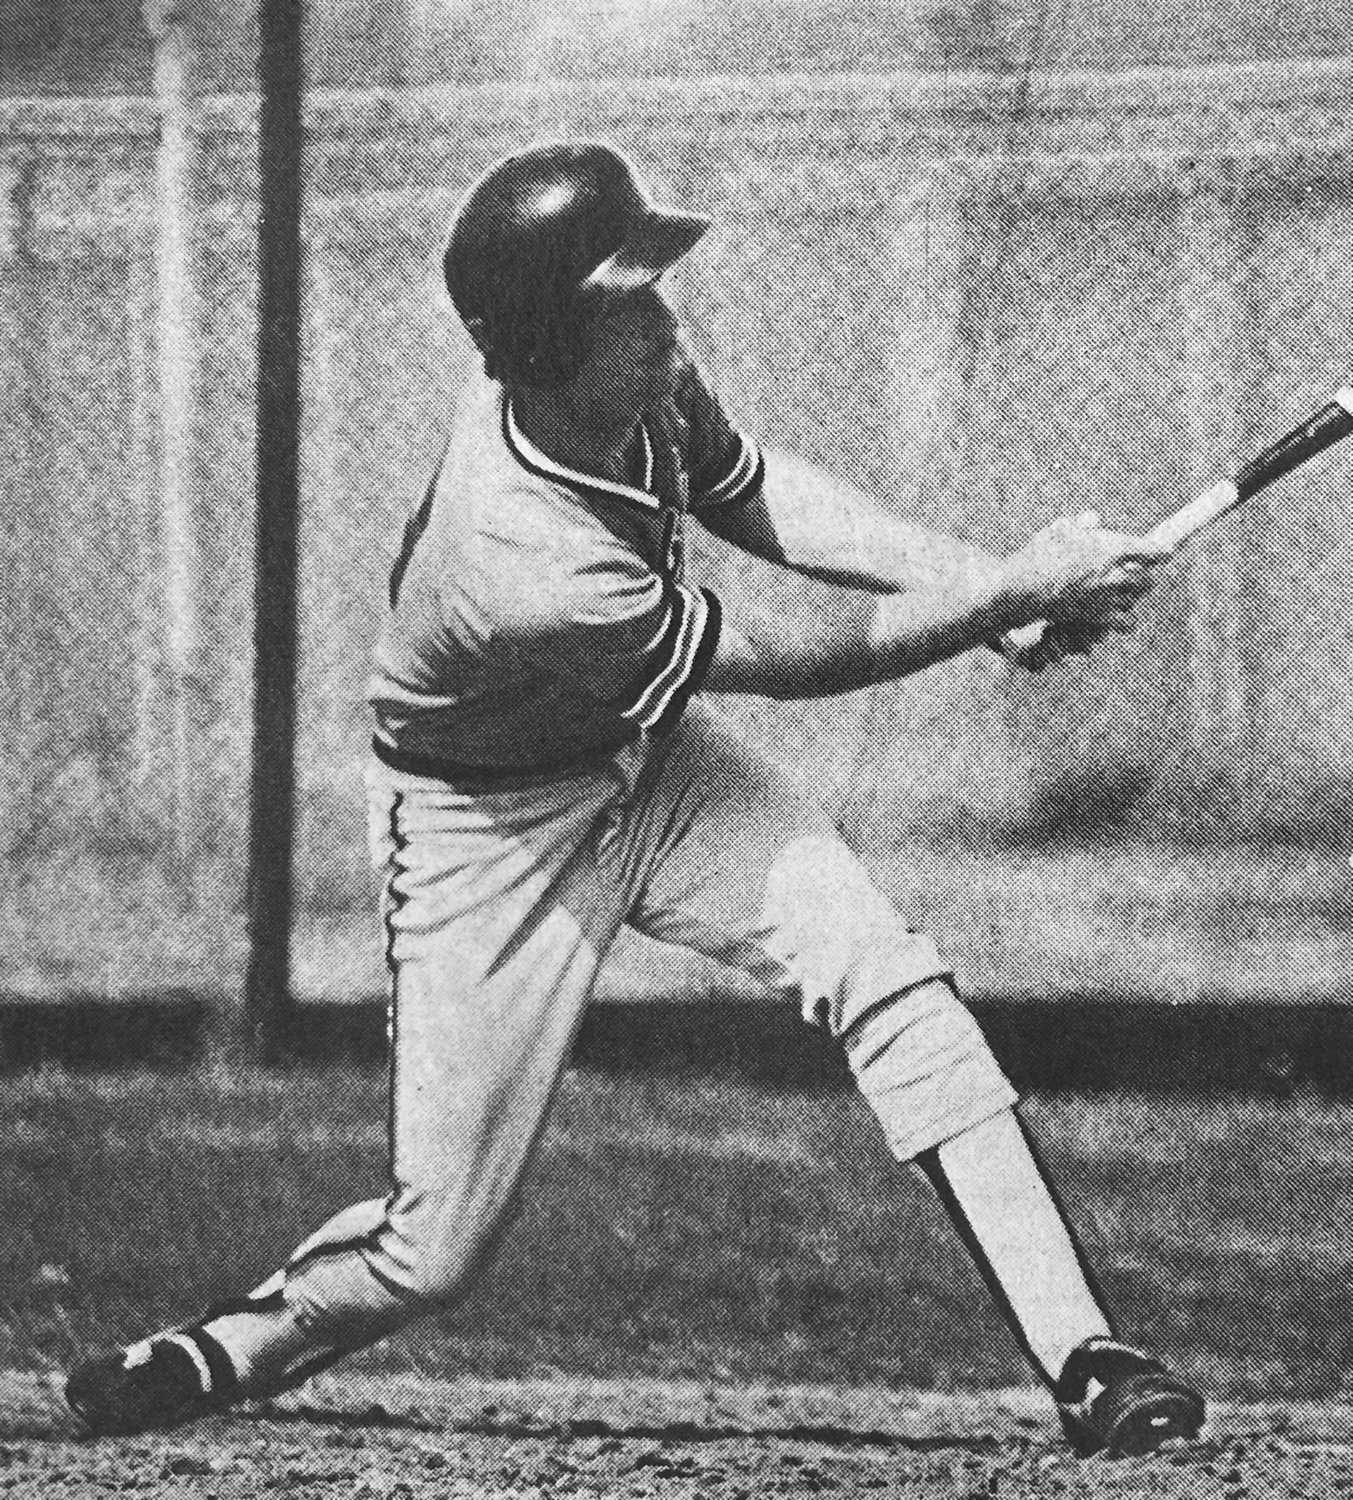 Former Campbell standout Henry Rochelle is shown swinging at a pitch during the team's historic win over Radford in 1985. Rochelle finished with an NCAA-record five home runs.